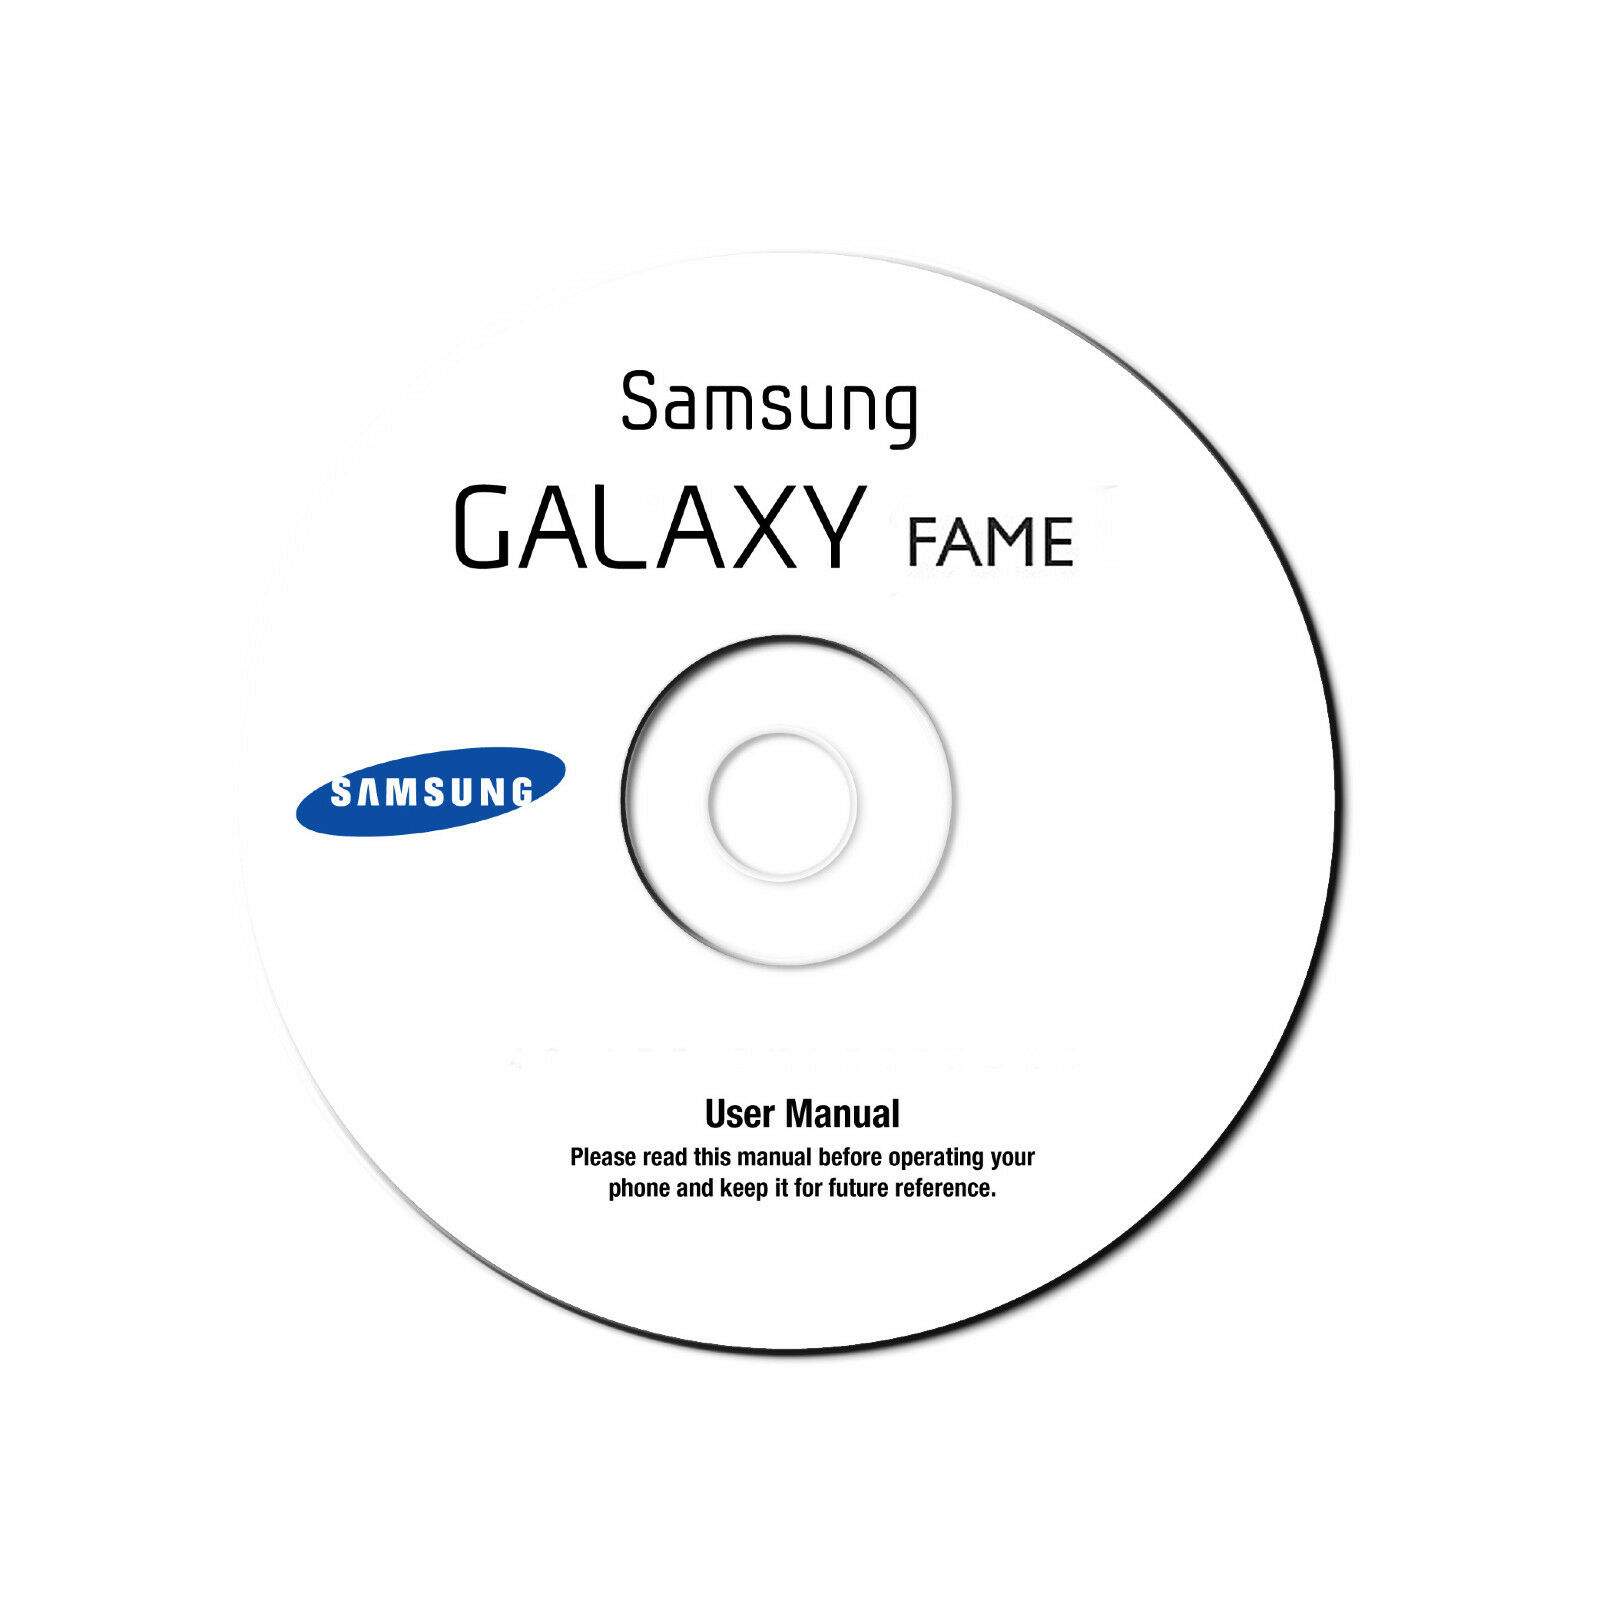 User Manual for Samsung Galaxy Fame GT-S6810 Smart Cell Phone (Jellybean) on CD